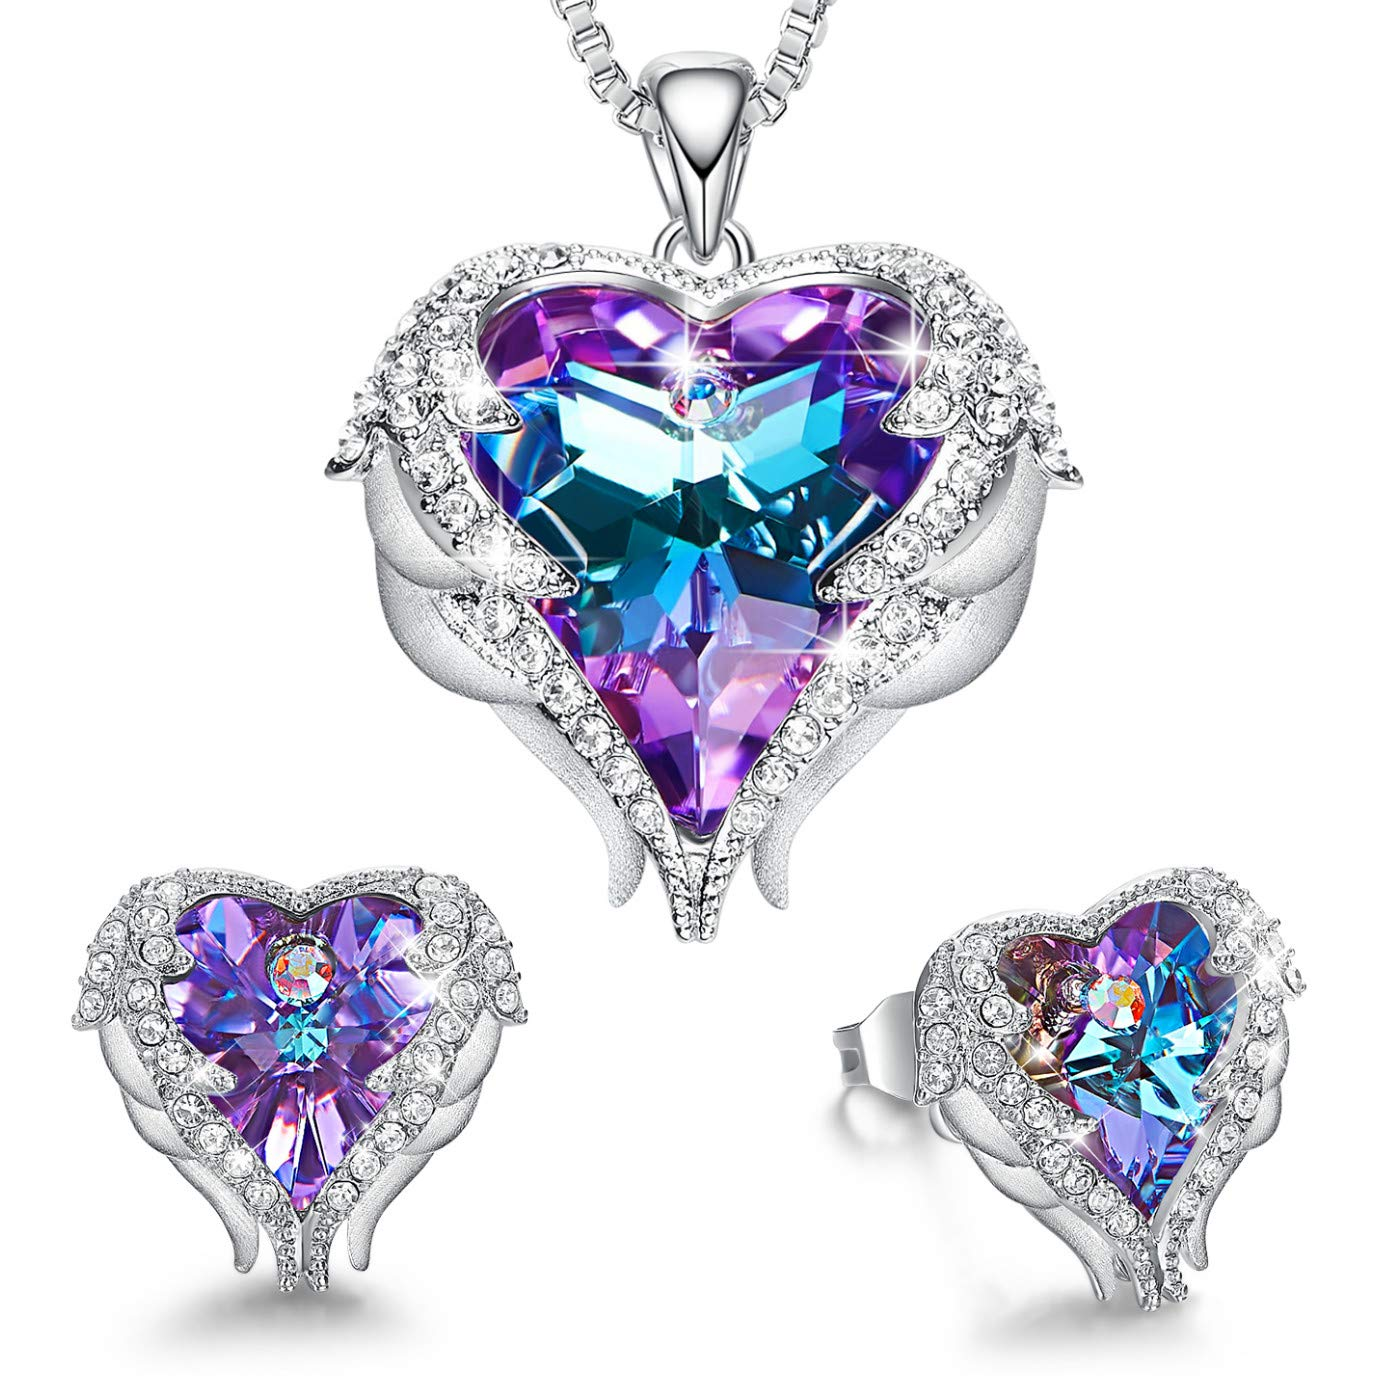 CDE Angel Wing Heart Jewelry Sets Embellished with Crystals from Swarovski Set for Women Pendant Necklaces and Earrings Anniversary Birthday for Women Love by CDE